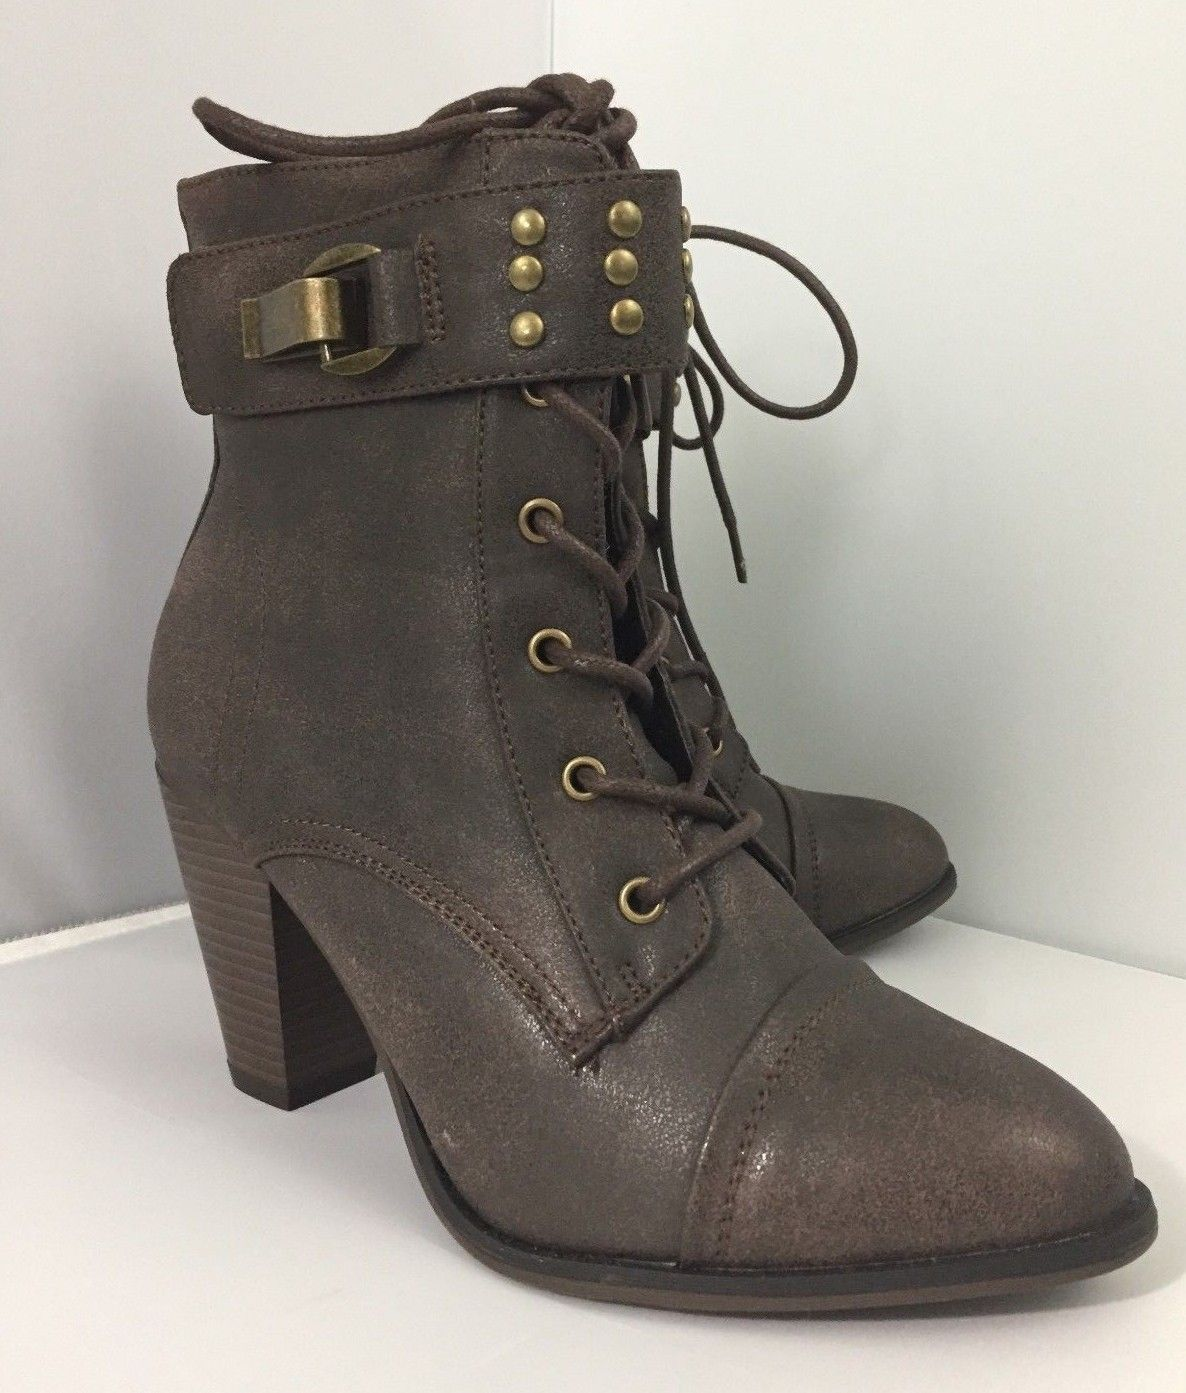 55b6bdec239 Forever Women's High Heel Boots - Size 9 - and 50 similar items